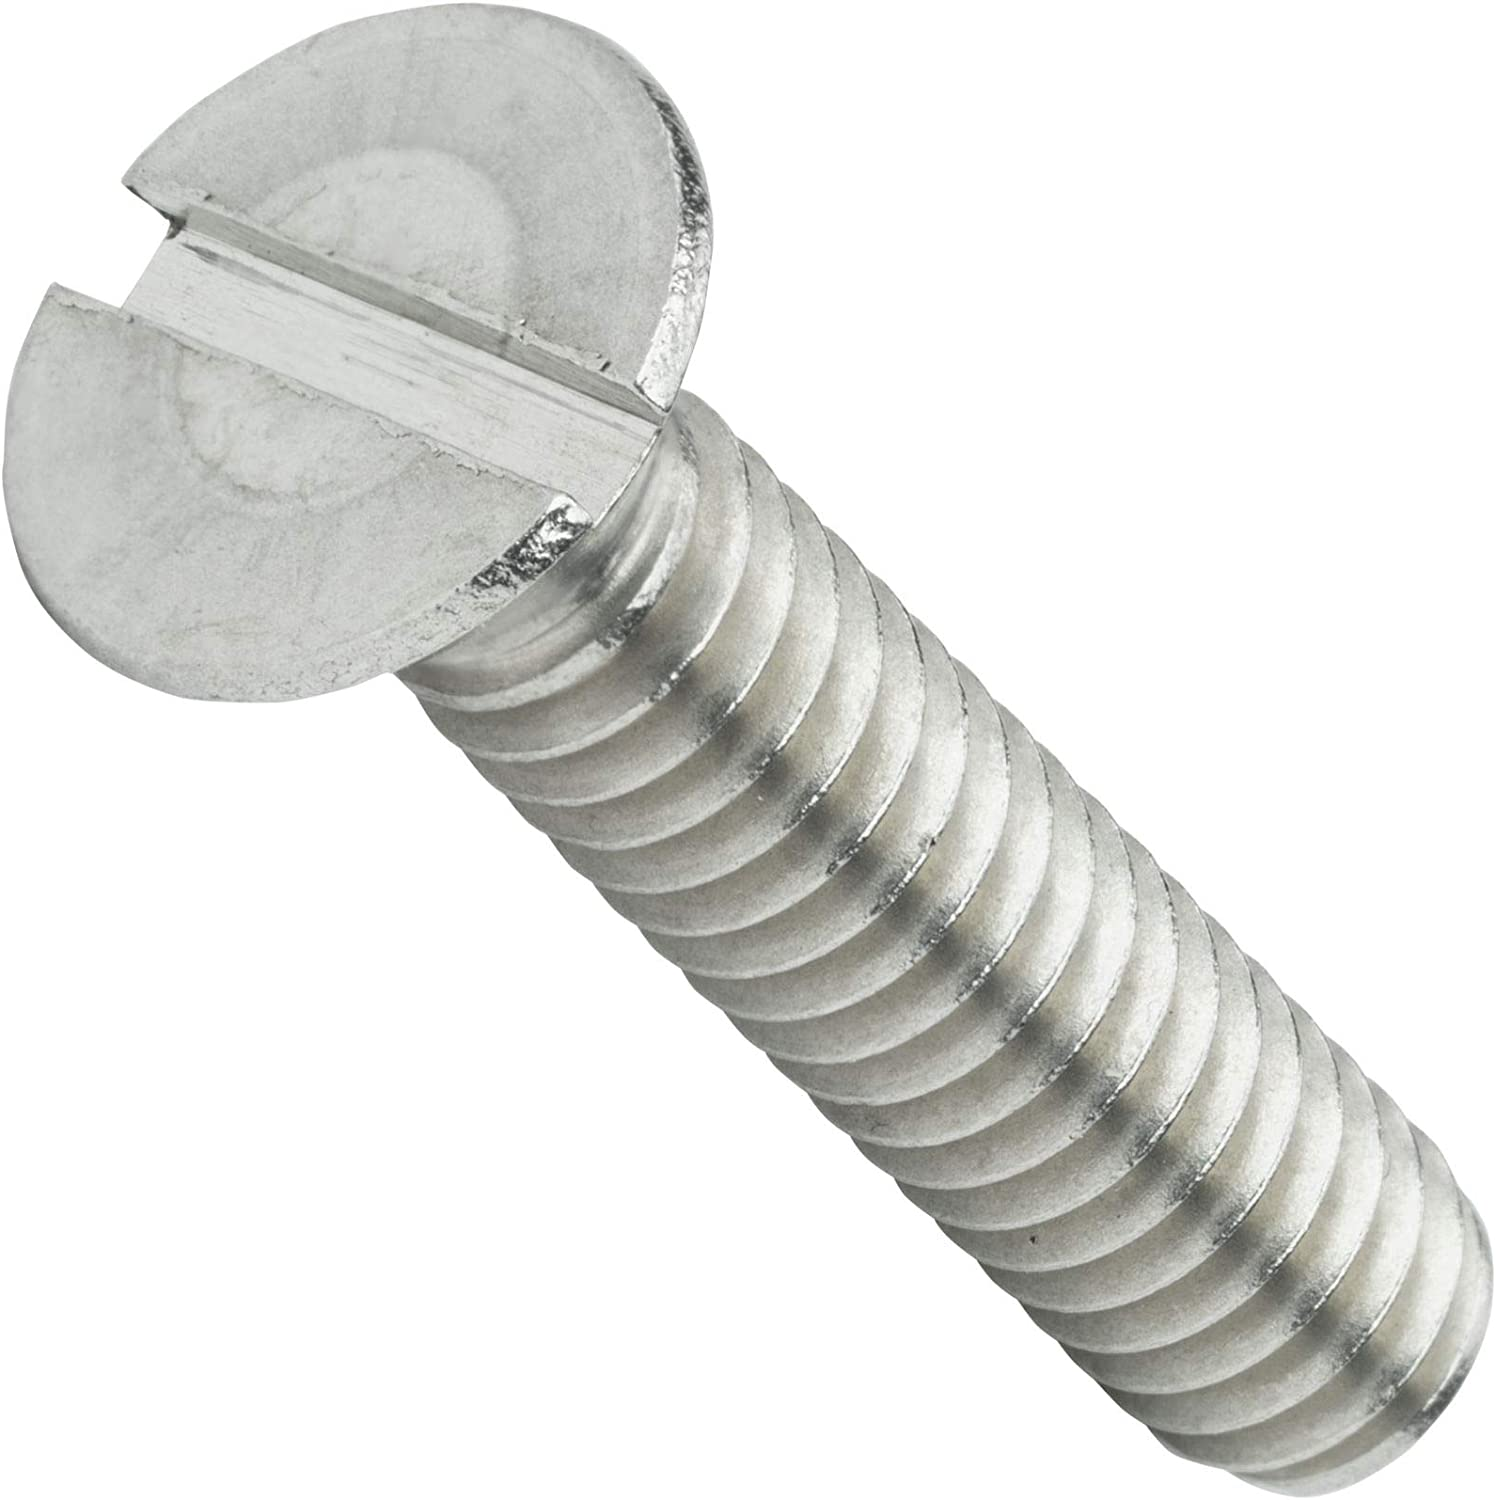 5//16-18 x 4 in - Lot 25 Stainless Steel Machine Screws Slotted Flat Head